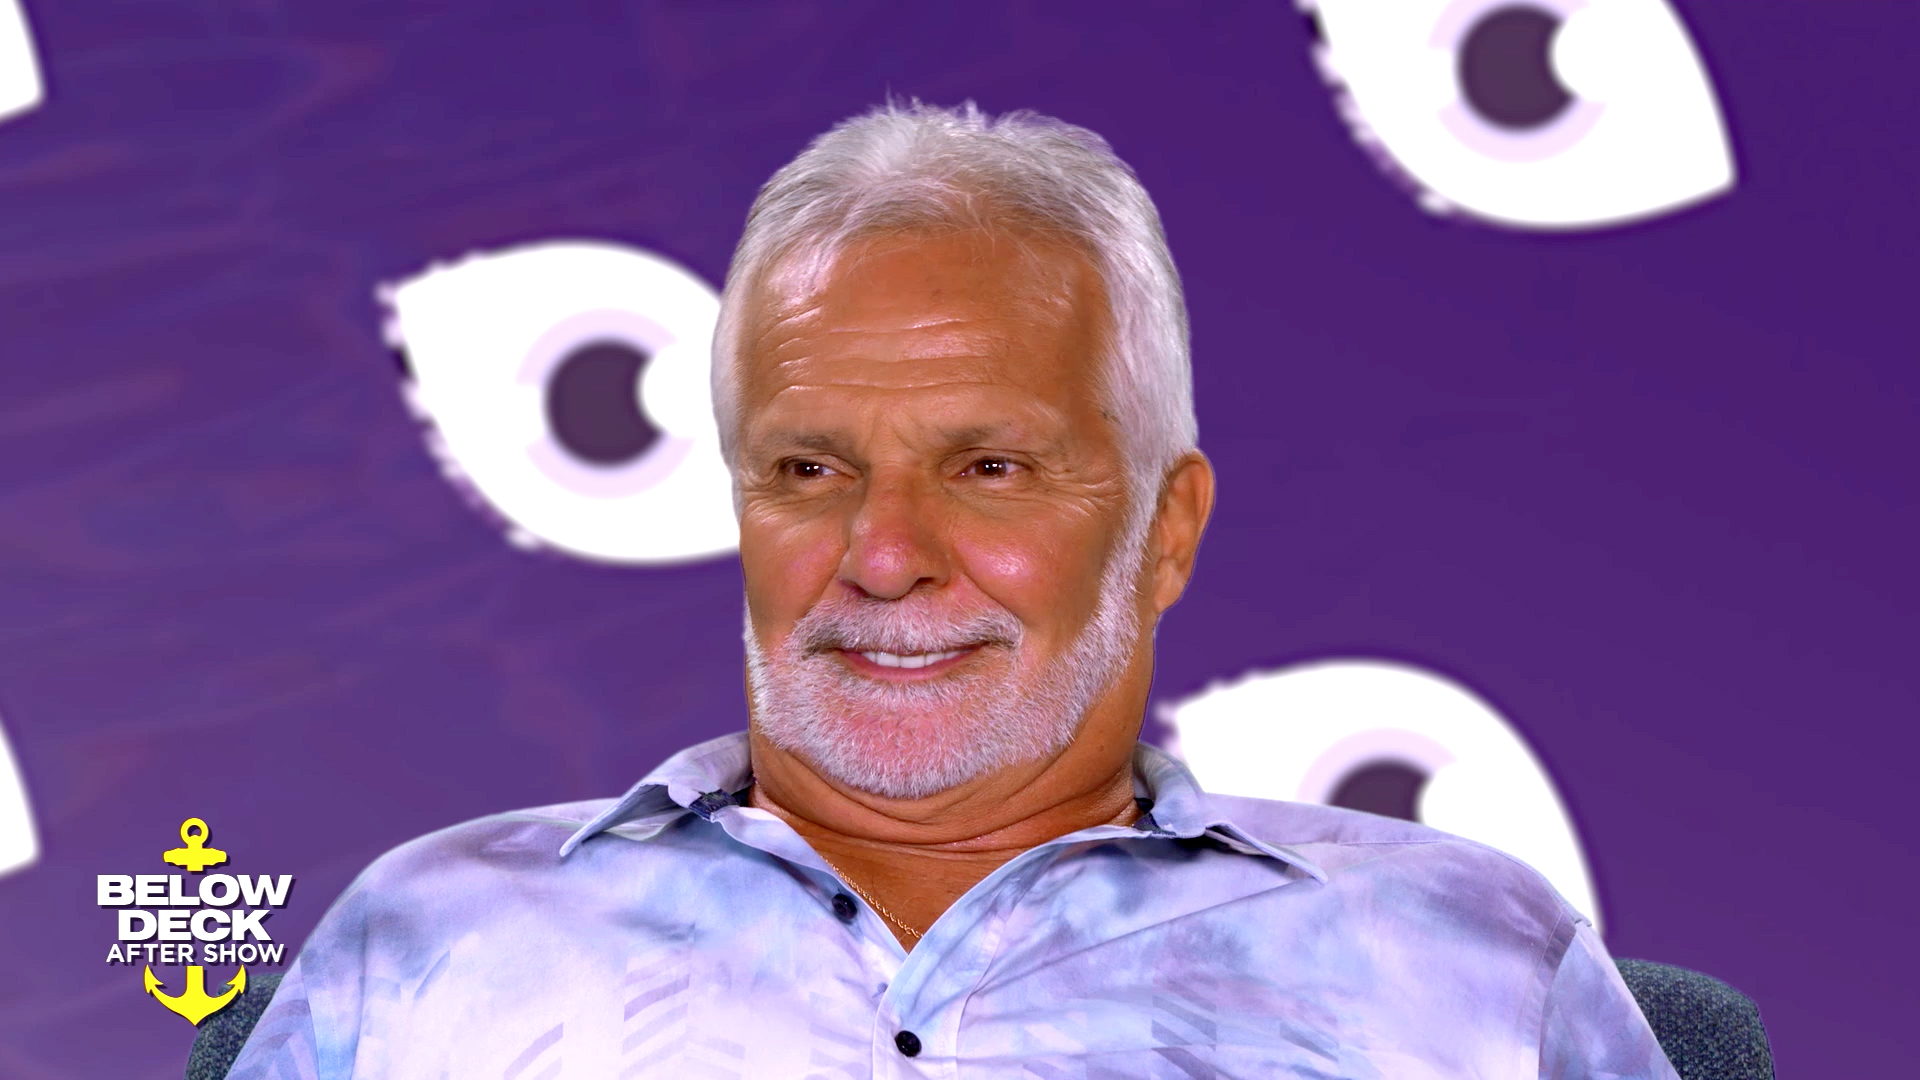 Captain Lee Rosbach Reveals the Secret Hook Up Spot on the Yacht